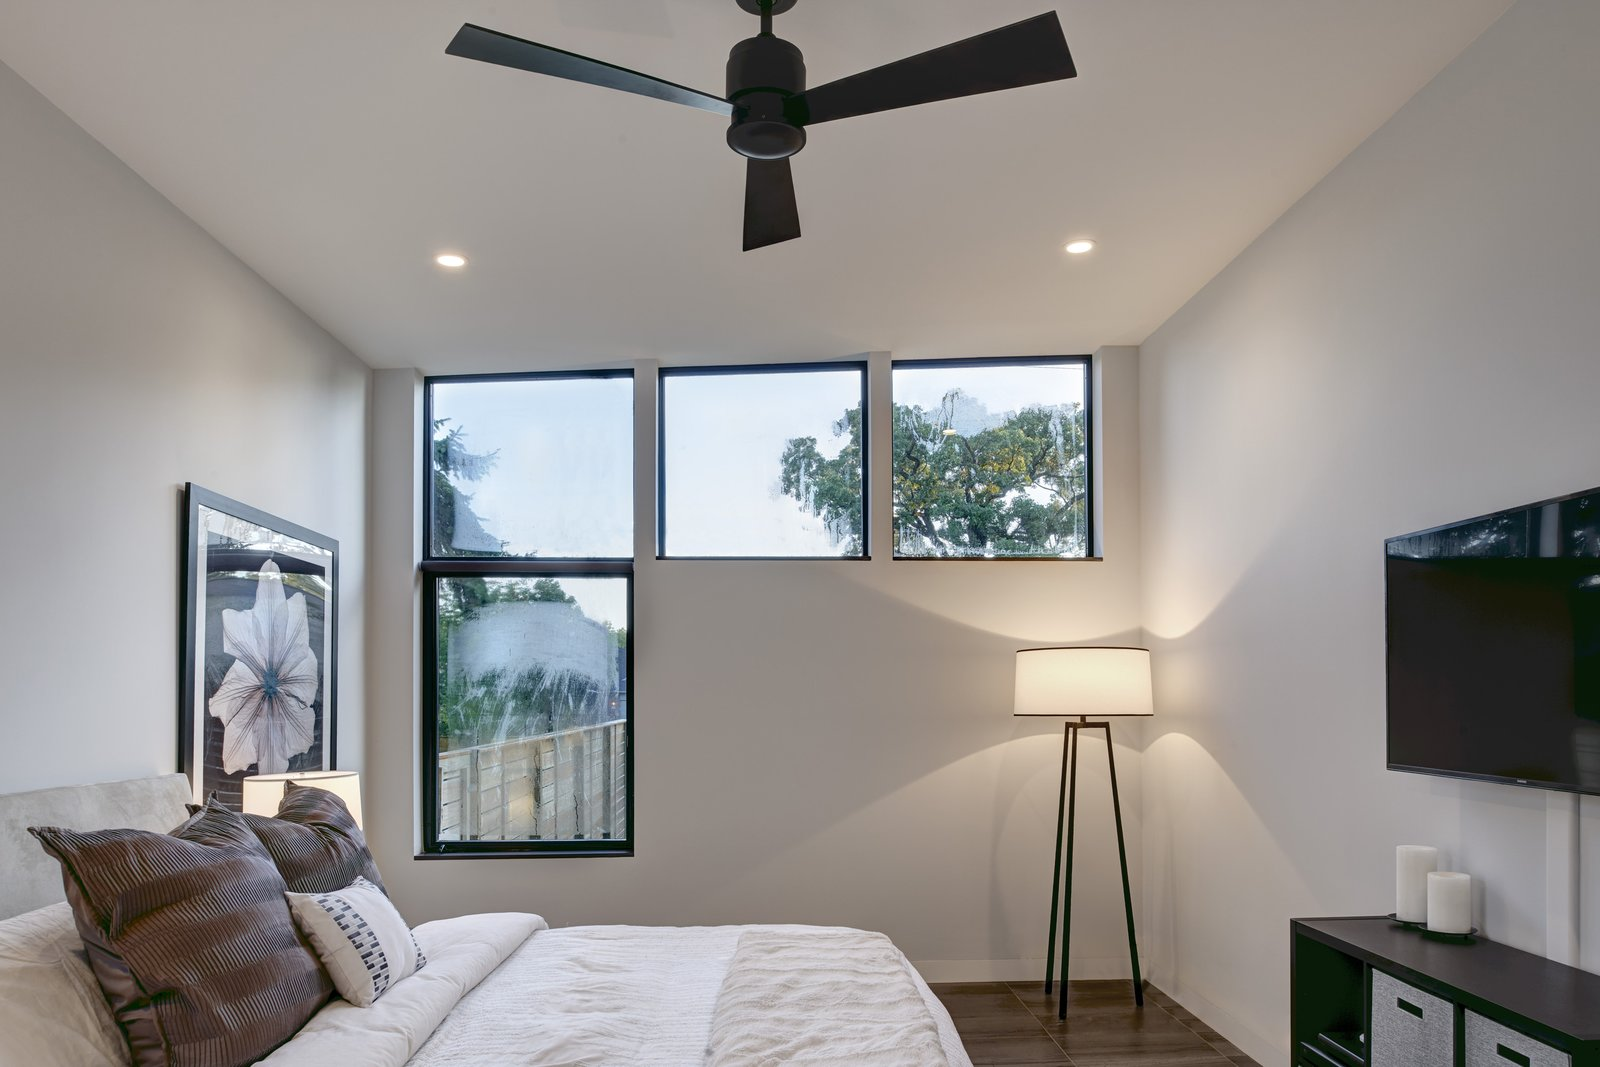 Reconfigured windows maximize daylight in the bedrooms. Tagged: Bedroom, Bed, Lamps, Shelves, Storage, Ceiling Lighting, Recessed Lighting, and Porcelain Tile Floor. 328 Koser by Neumann Monson Architects